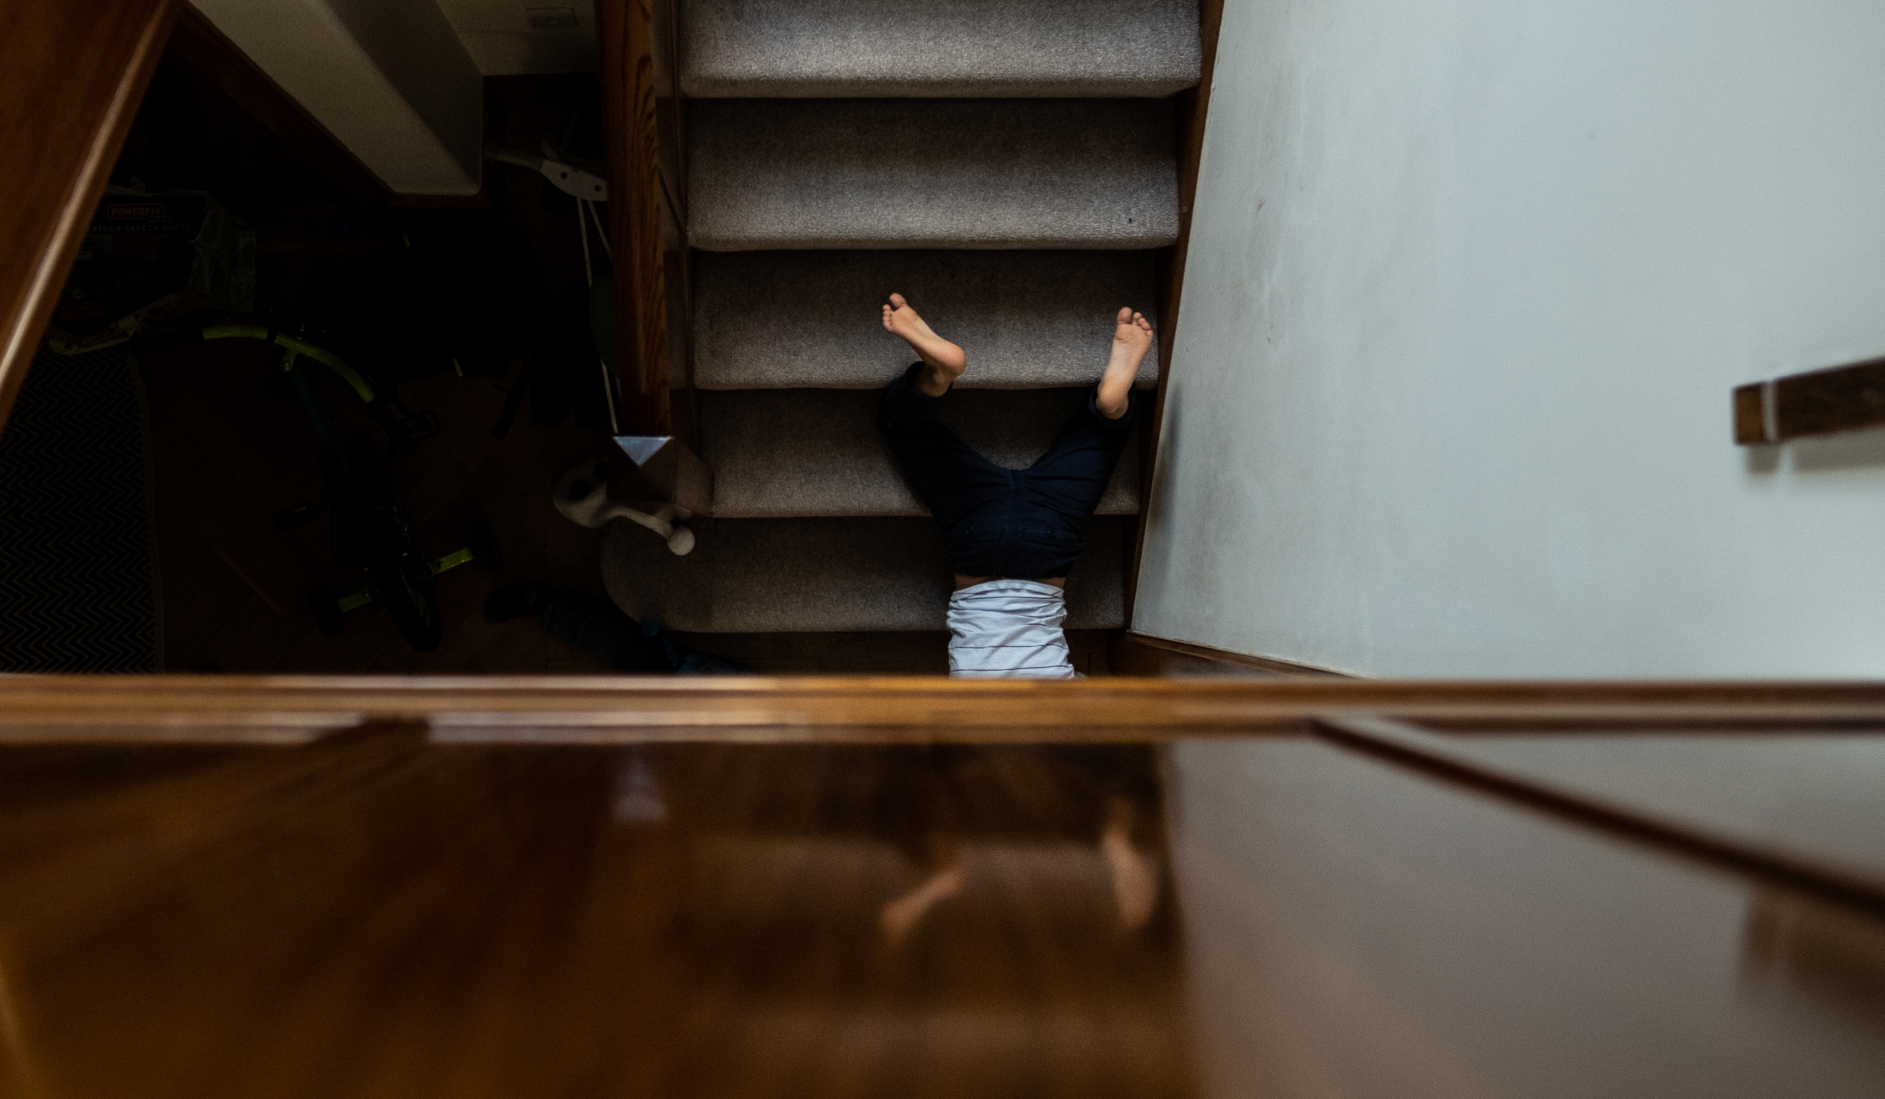 little boy's feet up on stairs giving the impression that he is falling down the stairs